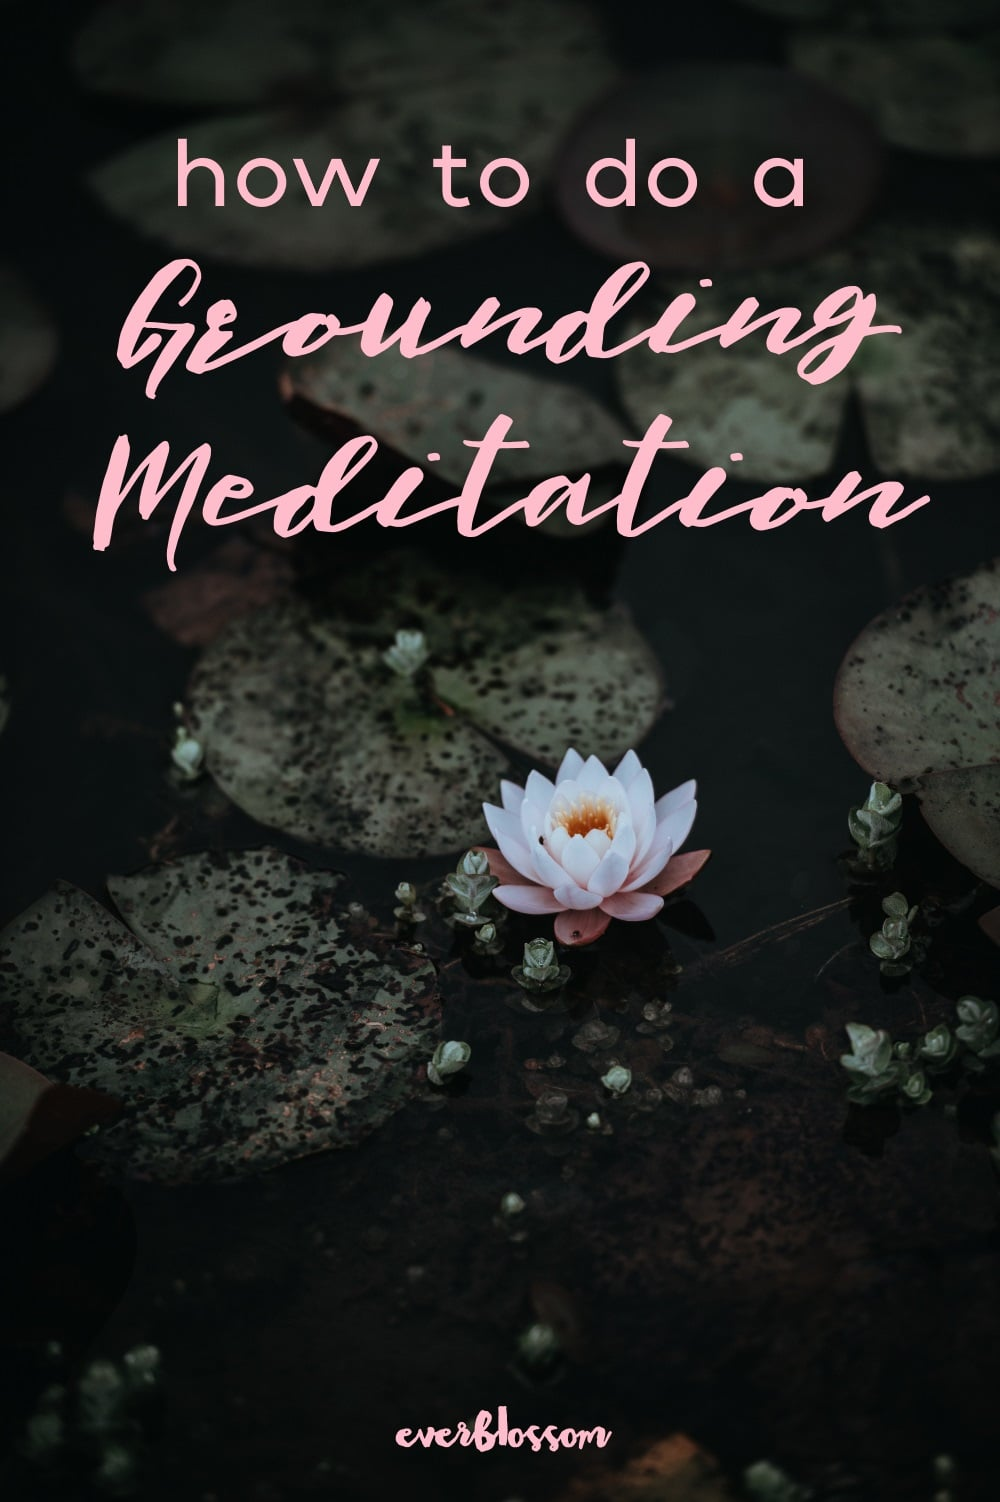 Lotus flower with caption: how to do a grounding meditation